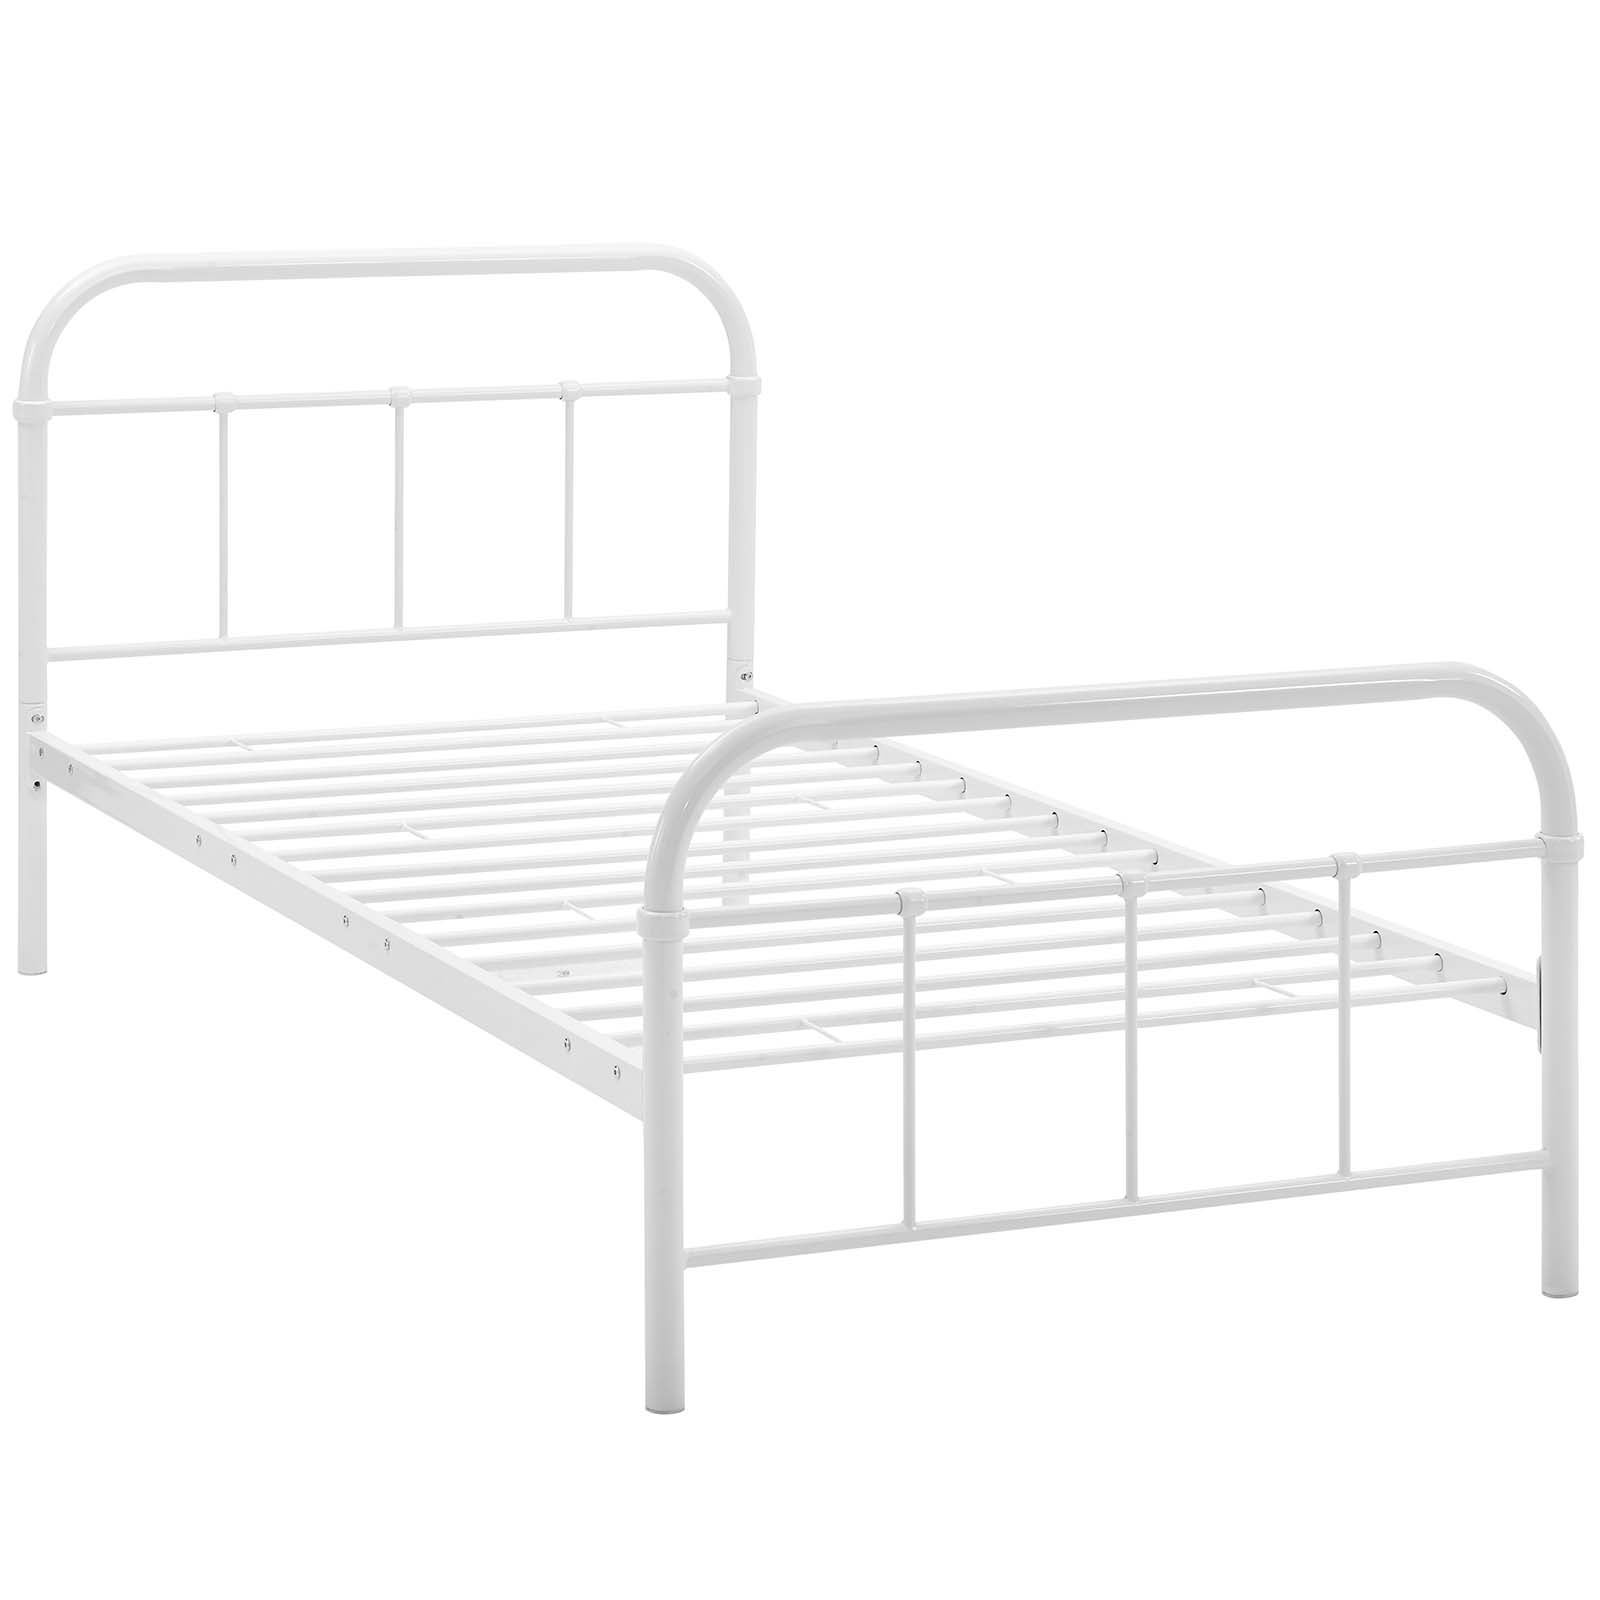 Shop Maisie Twin Stainless Steel Bed Frame - Free Shipping Today ...